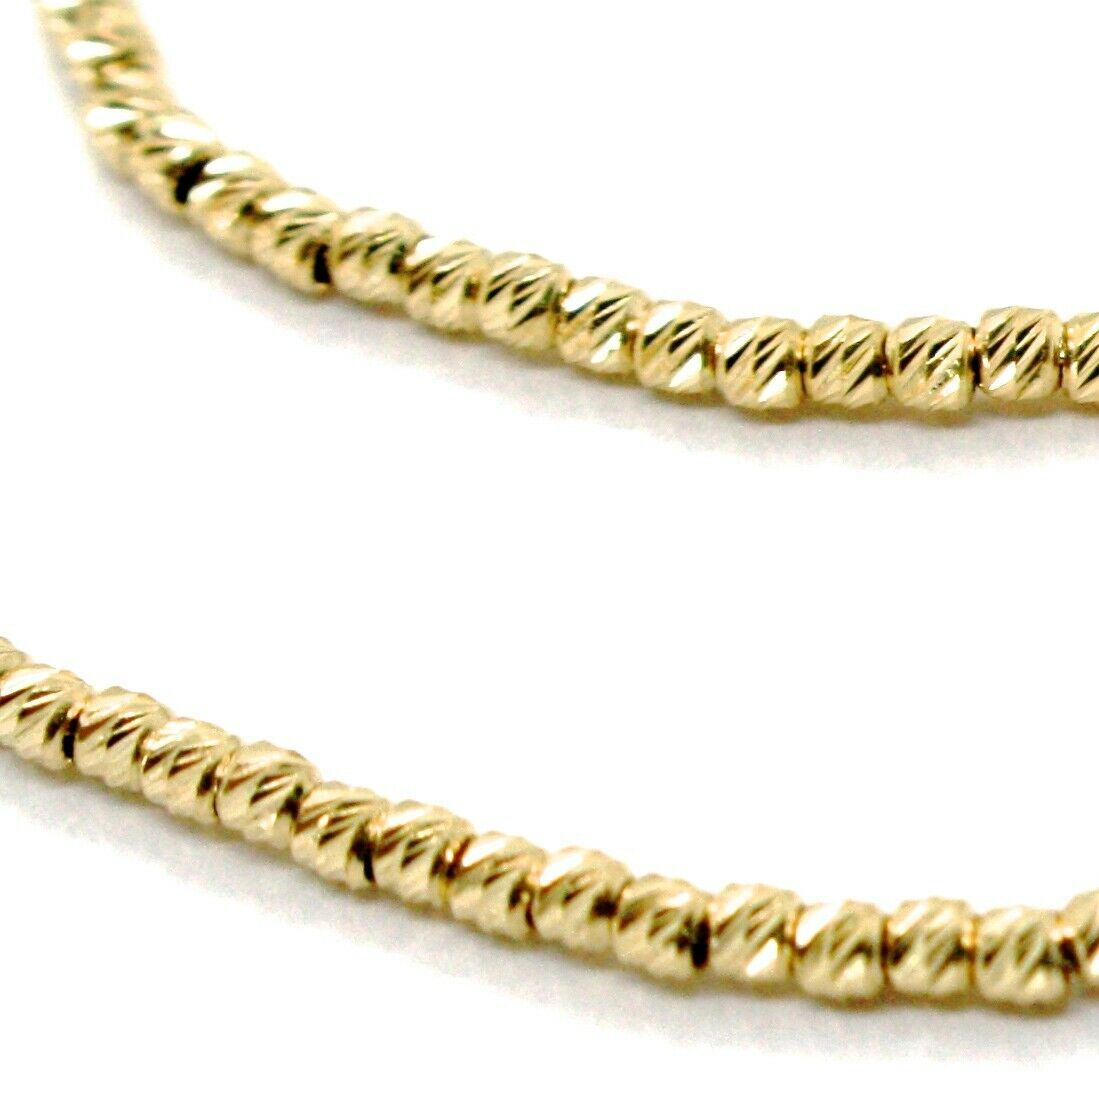 "18K YELLOW GOLD CHAIN FINELY WORKED SPHERES 1.5 MM DIAMOND CUT BALLS, 20"", 50 CM"